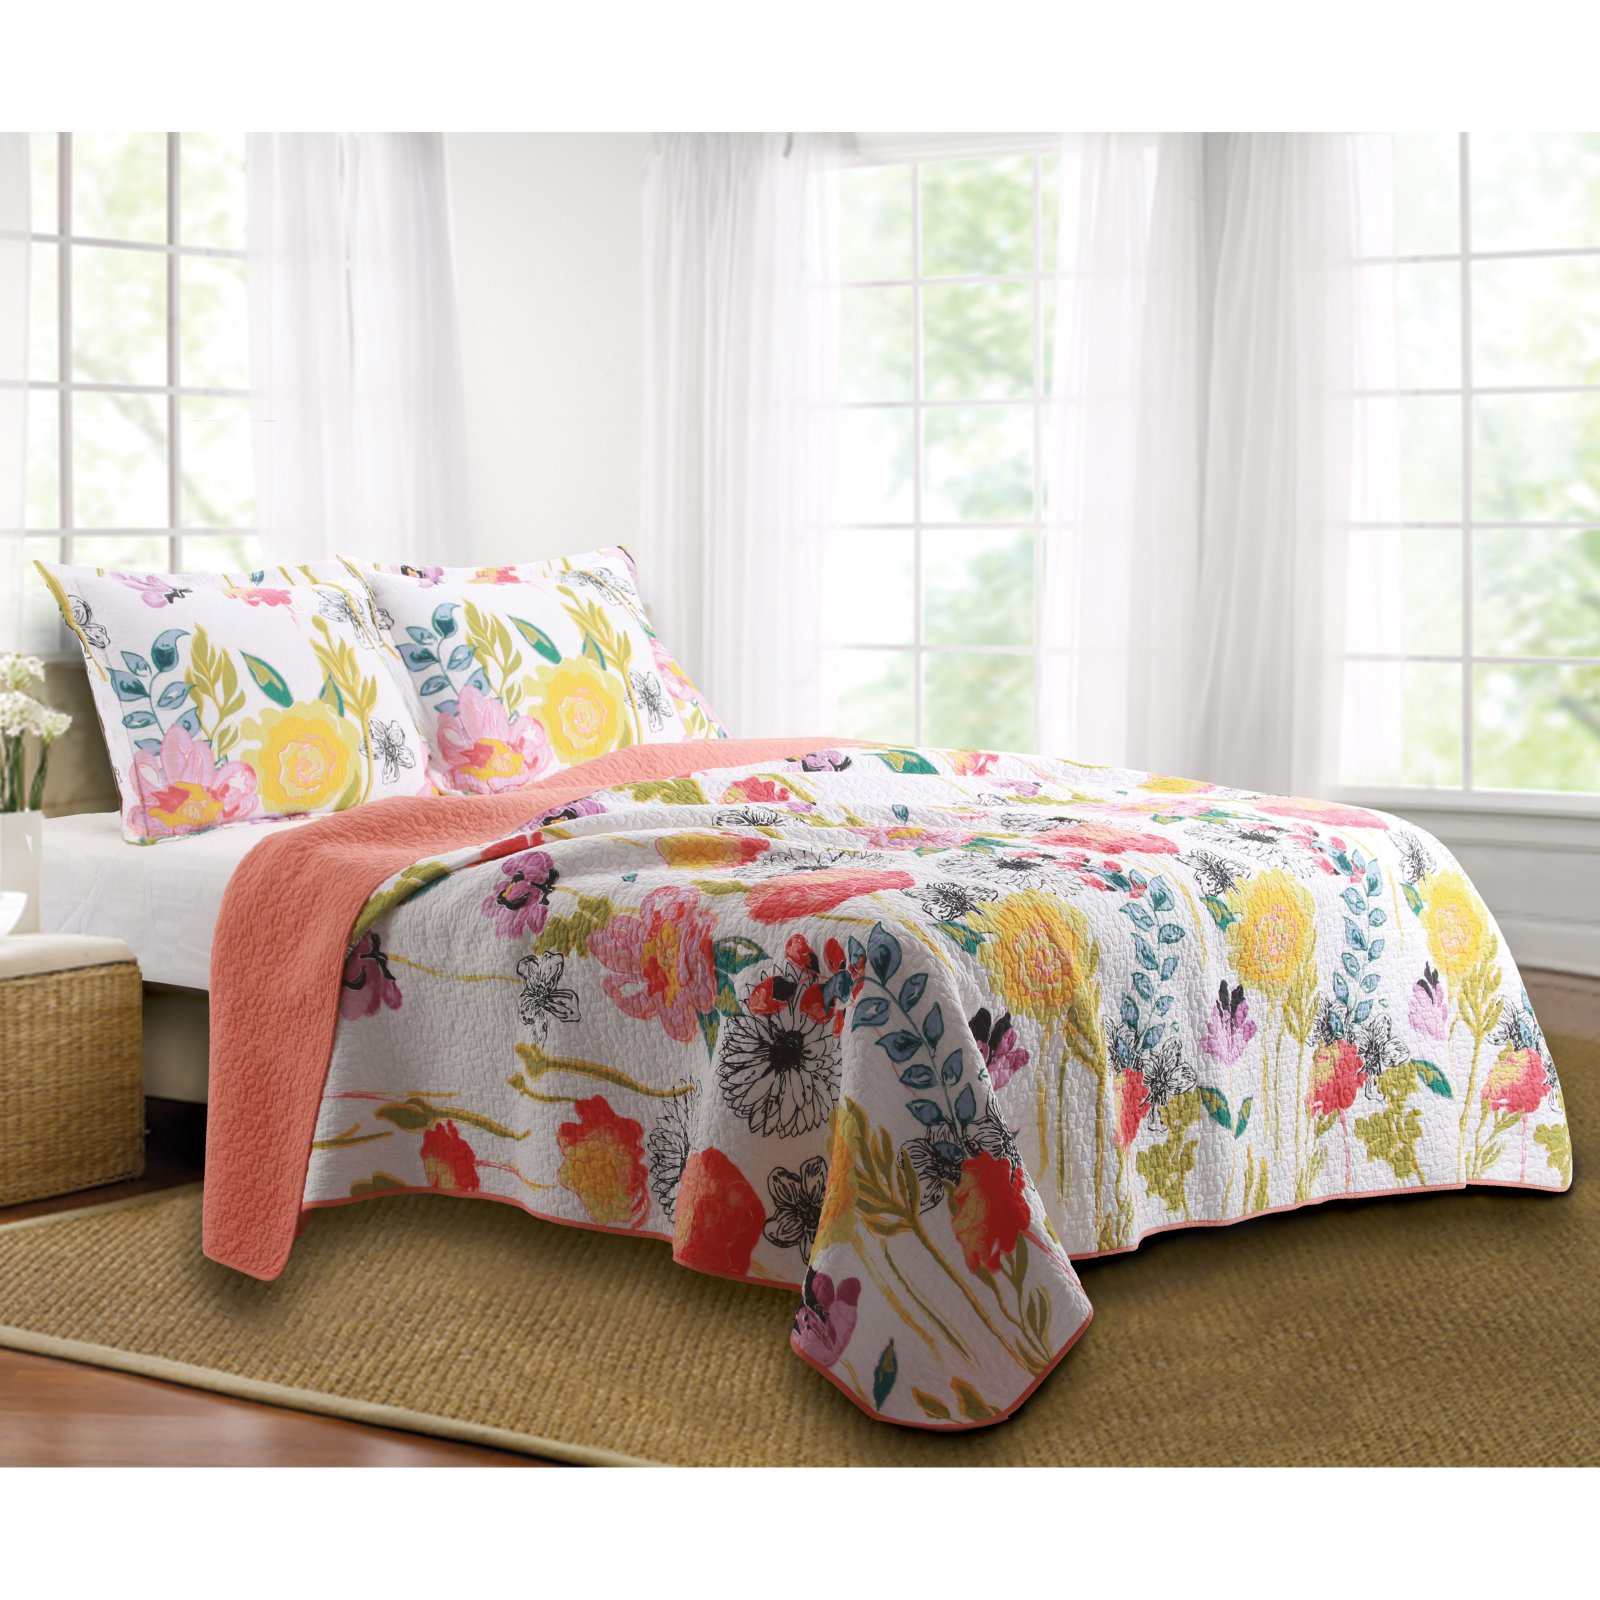 Greenland Home Fashions Watercolor Dream Quilt Set by Greenland Home Fashions